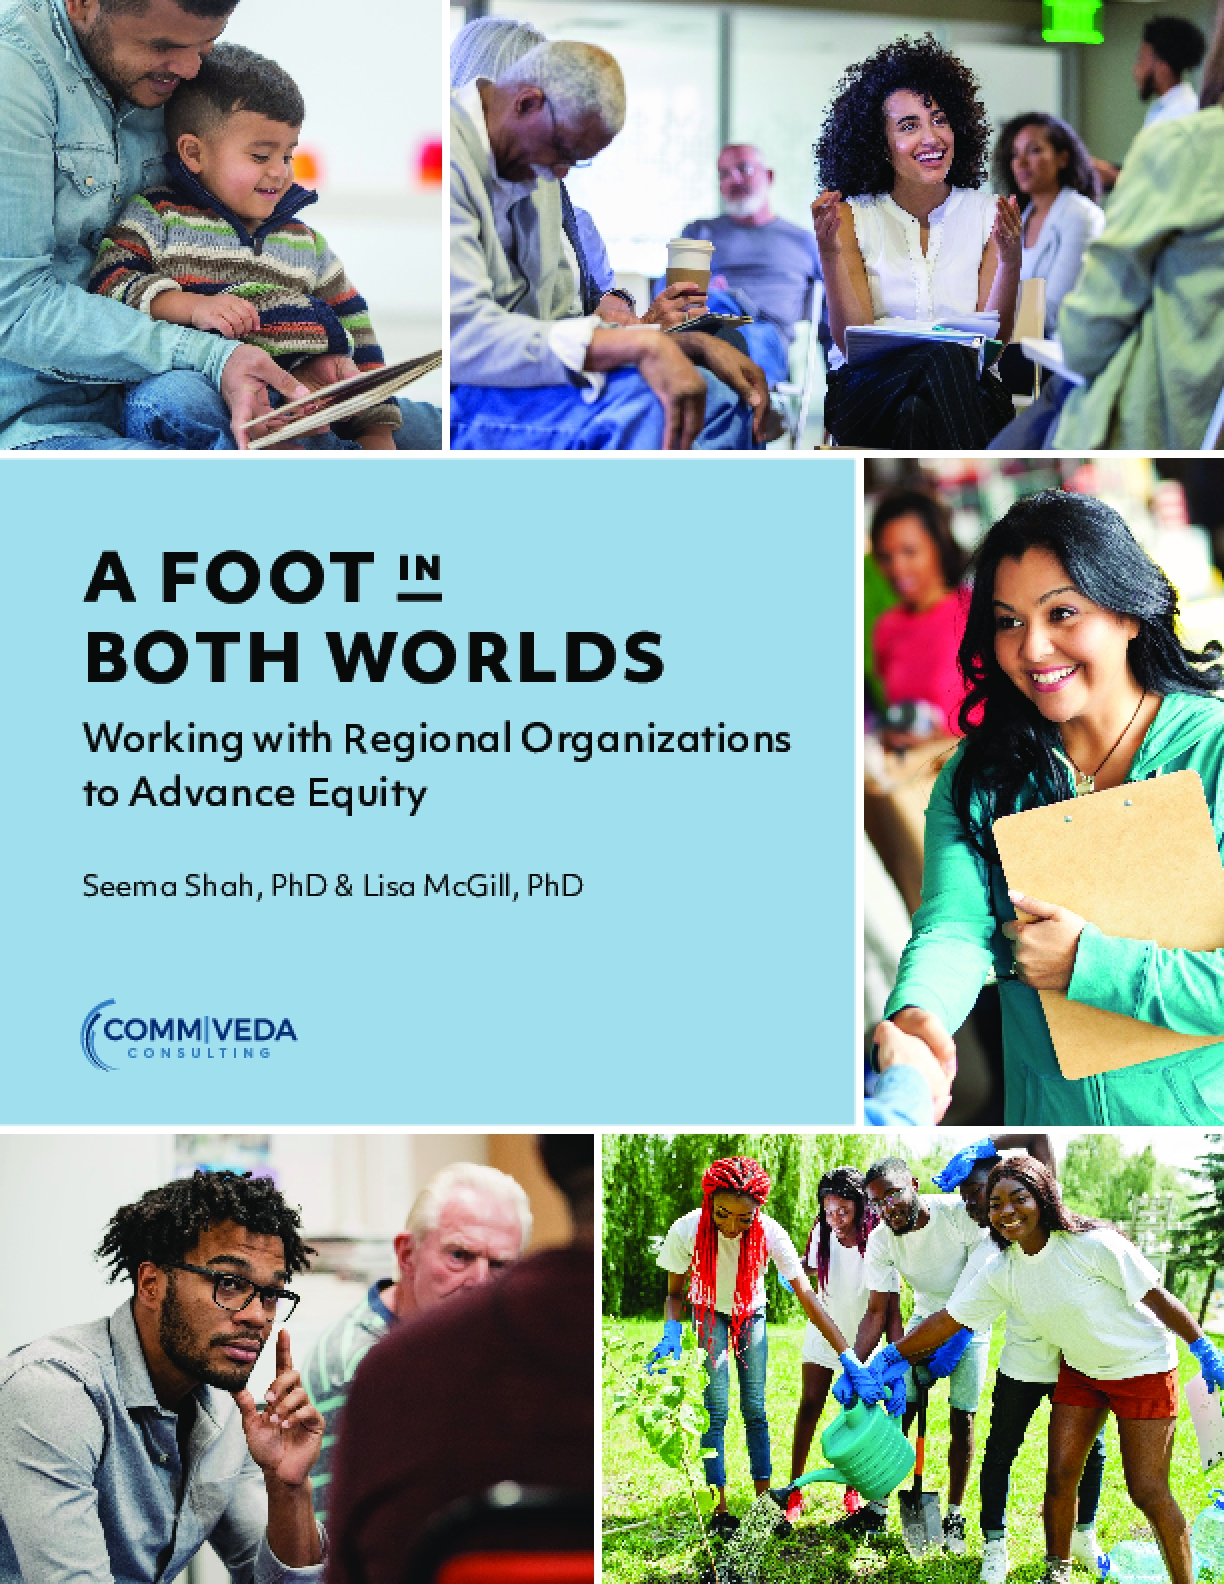 A Foot in Both Worlds: Working with Regional Organizations to Advance Equity